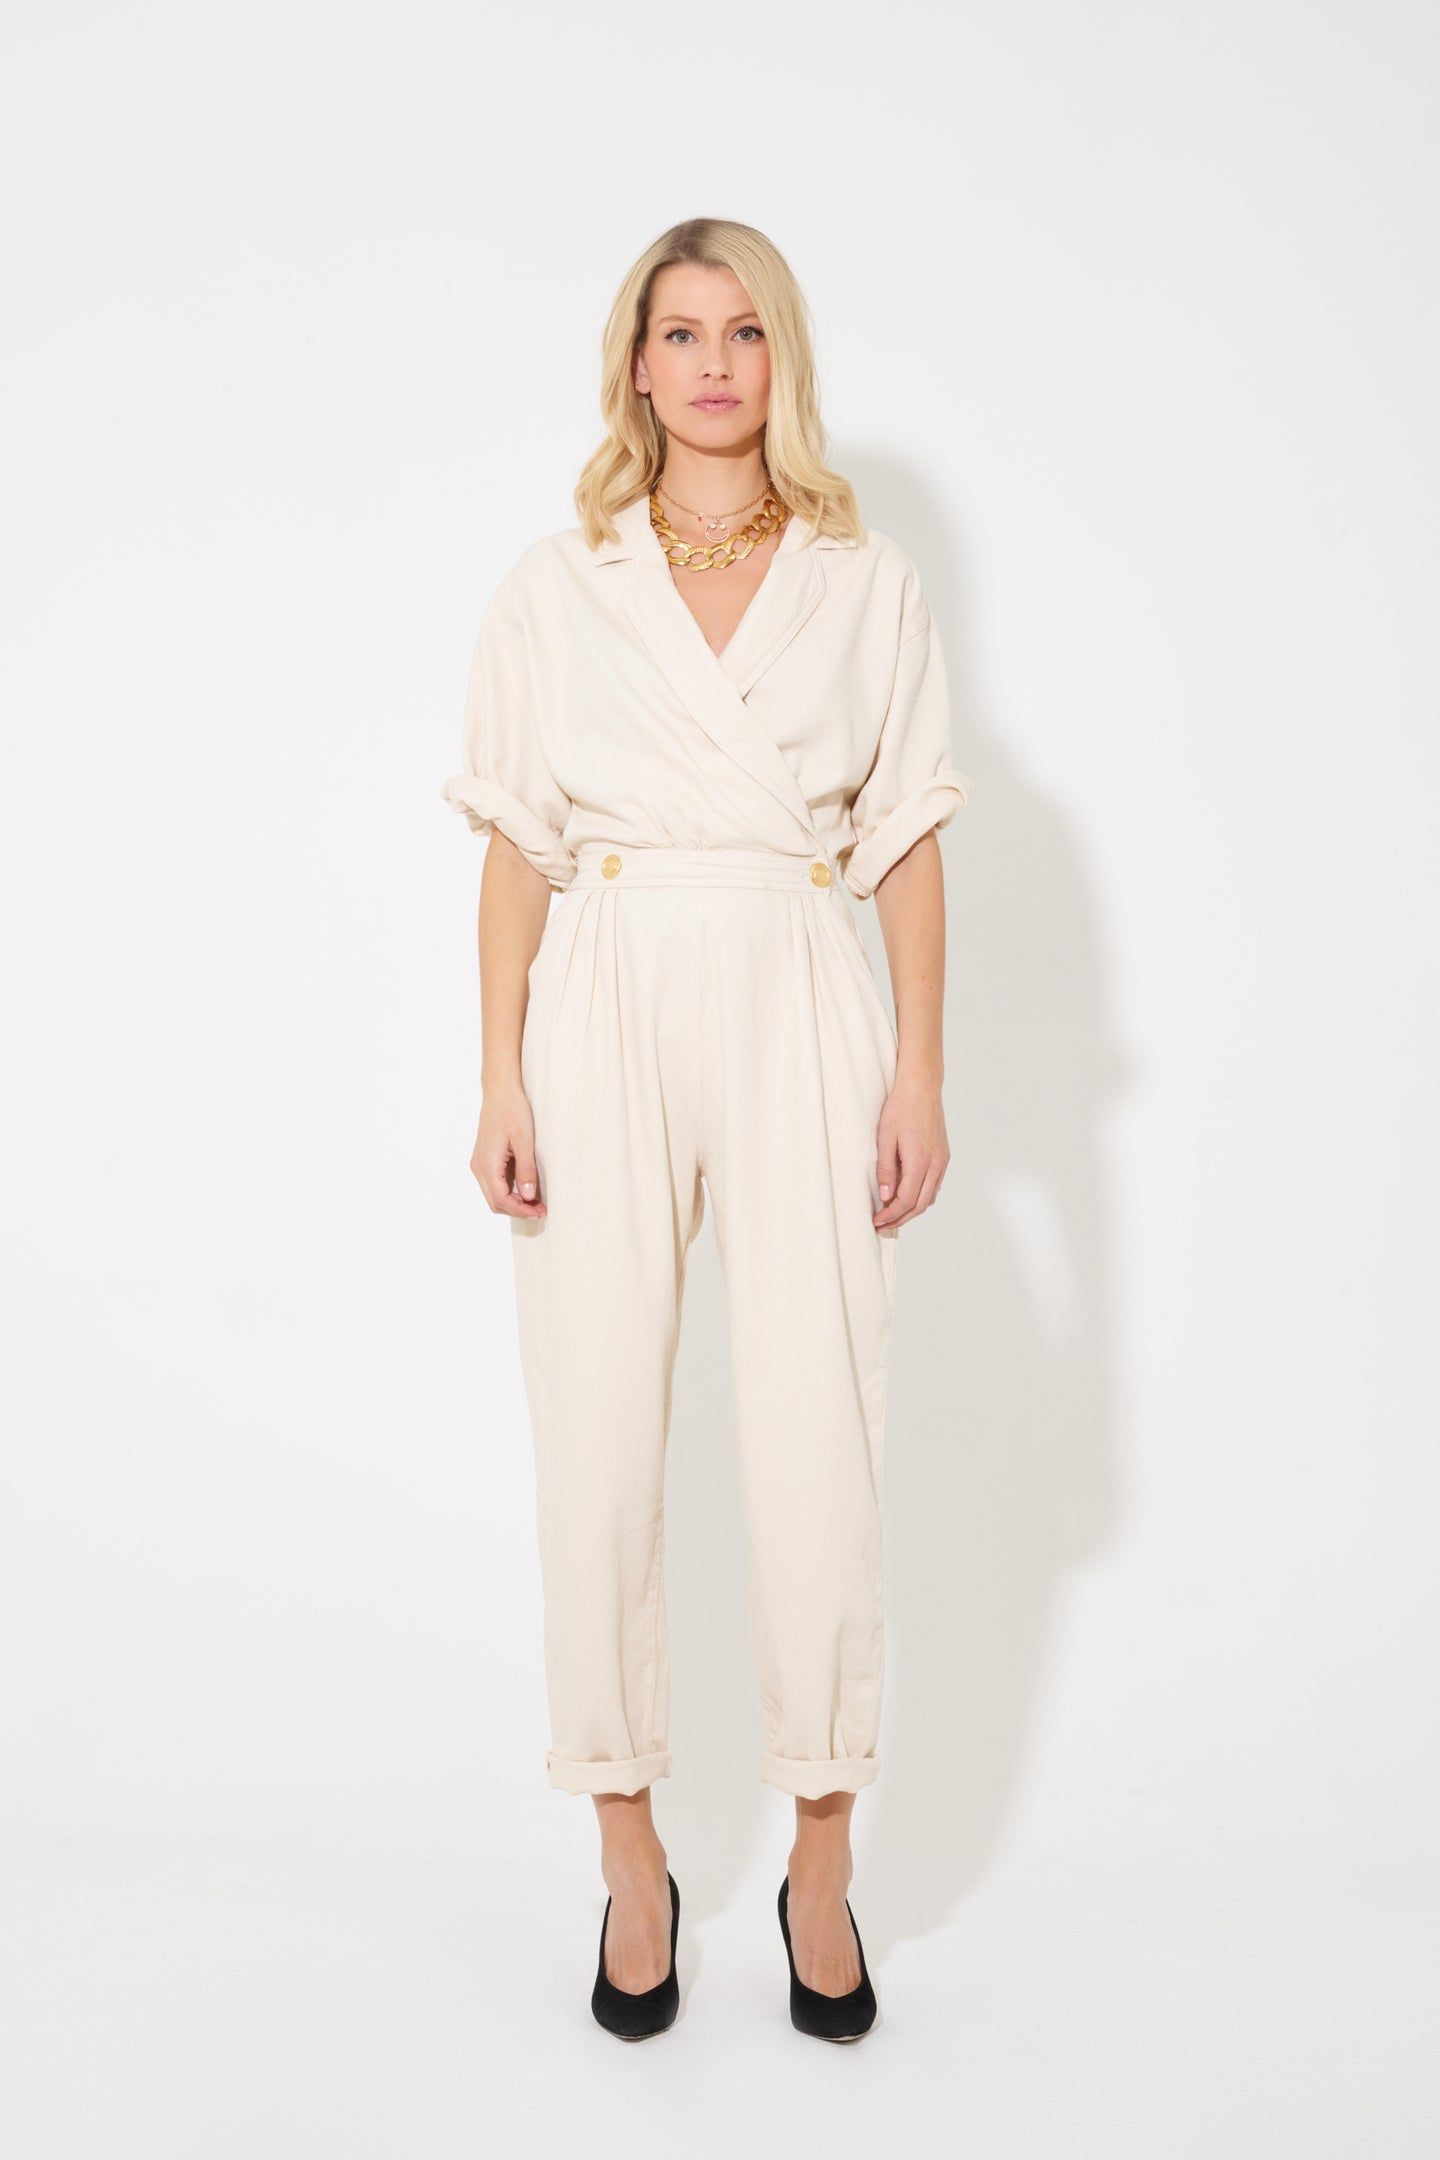 Wanda The Cross Over Power Jumpsuit - Sandy Hair Don't Care